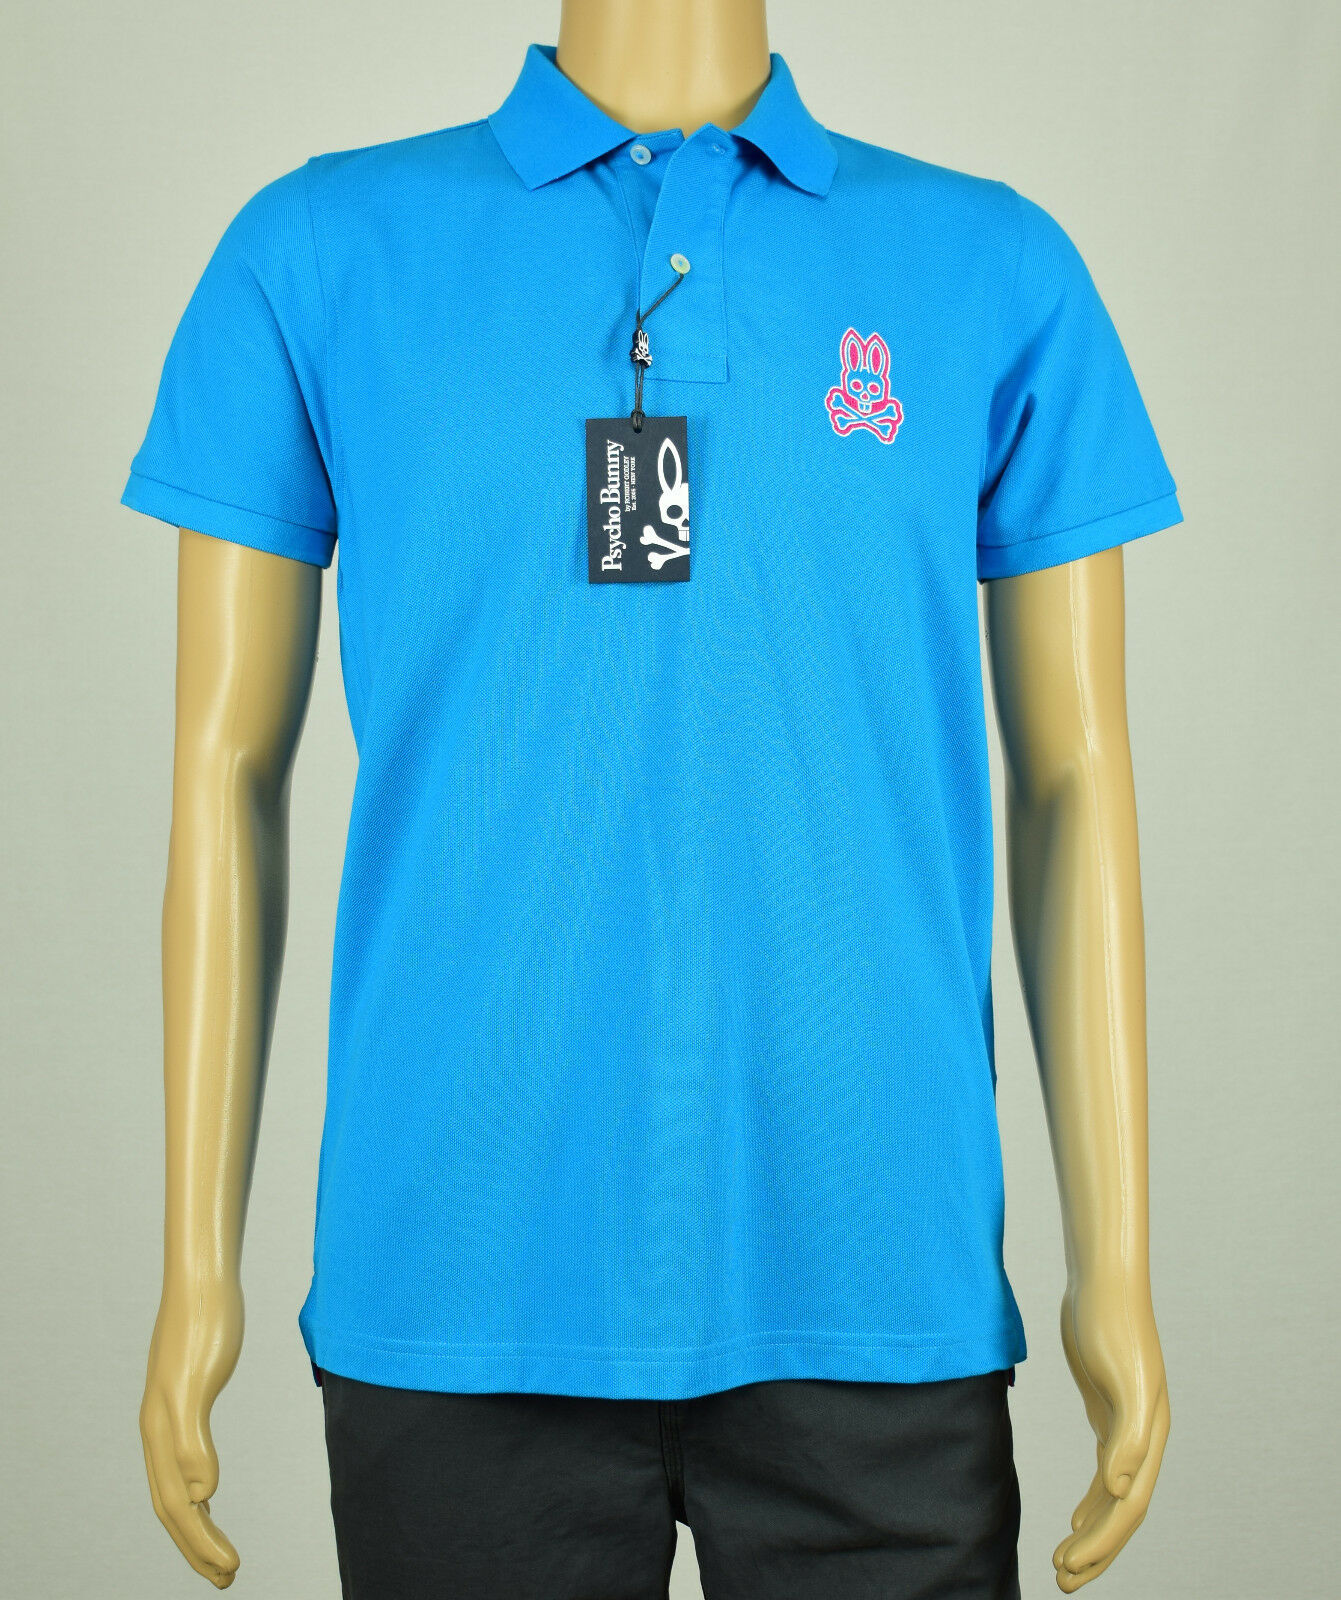 Psycho Bunny Mens Turquoise bluee Short Sleeve Polo Shirt  4(S) 6(L)